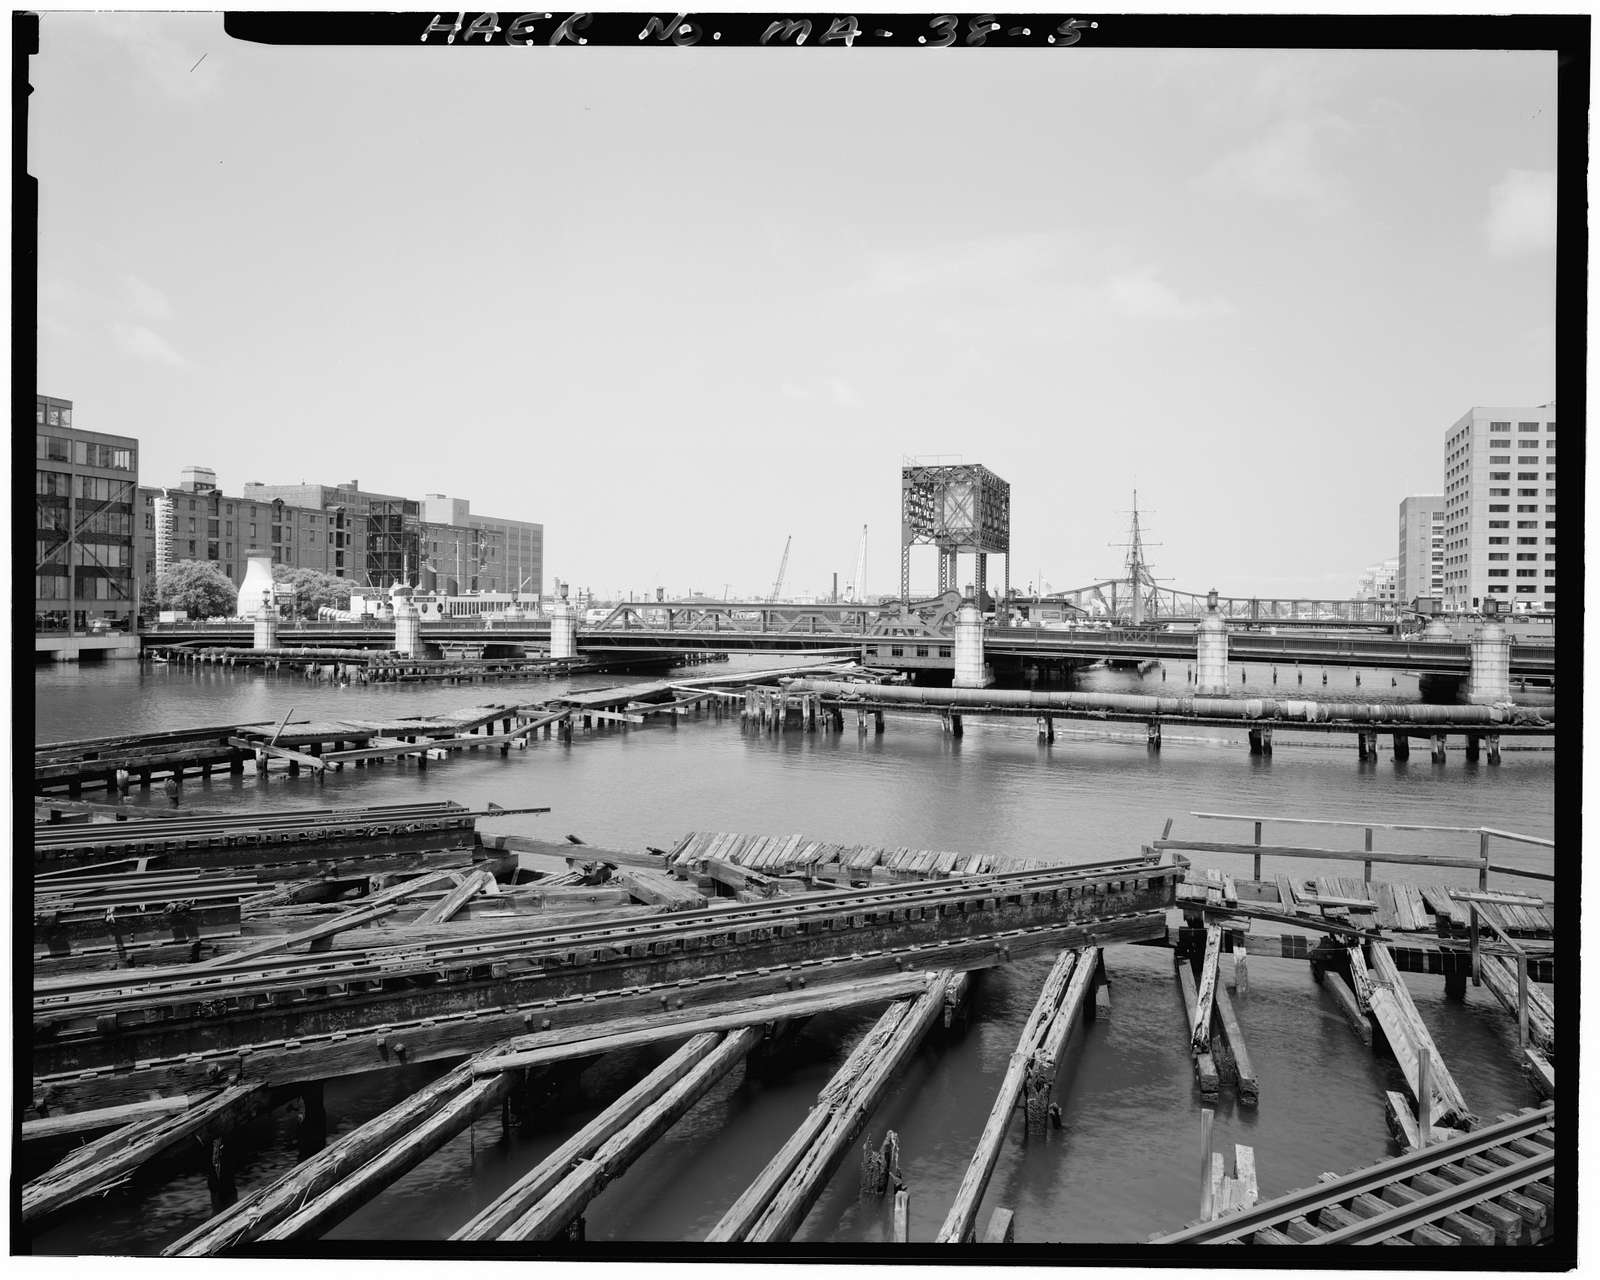 Congress Street Bascule Bridge, Spanning Fort Point Channel at Congress Street, Boston, Suffolk County, MA